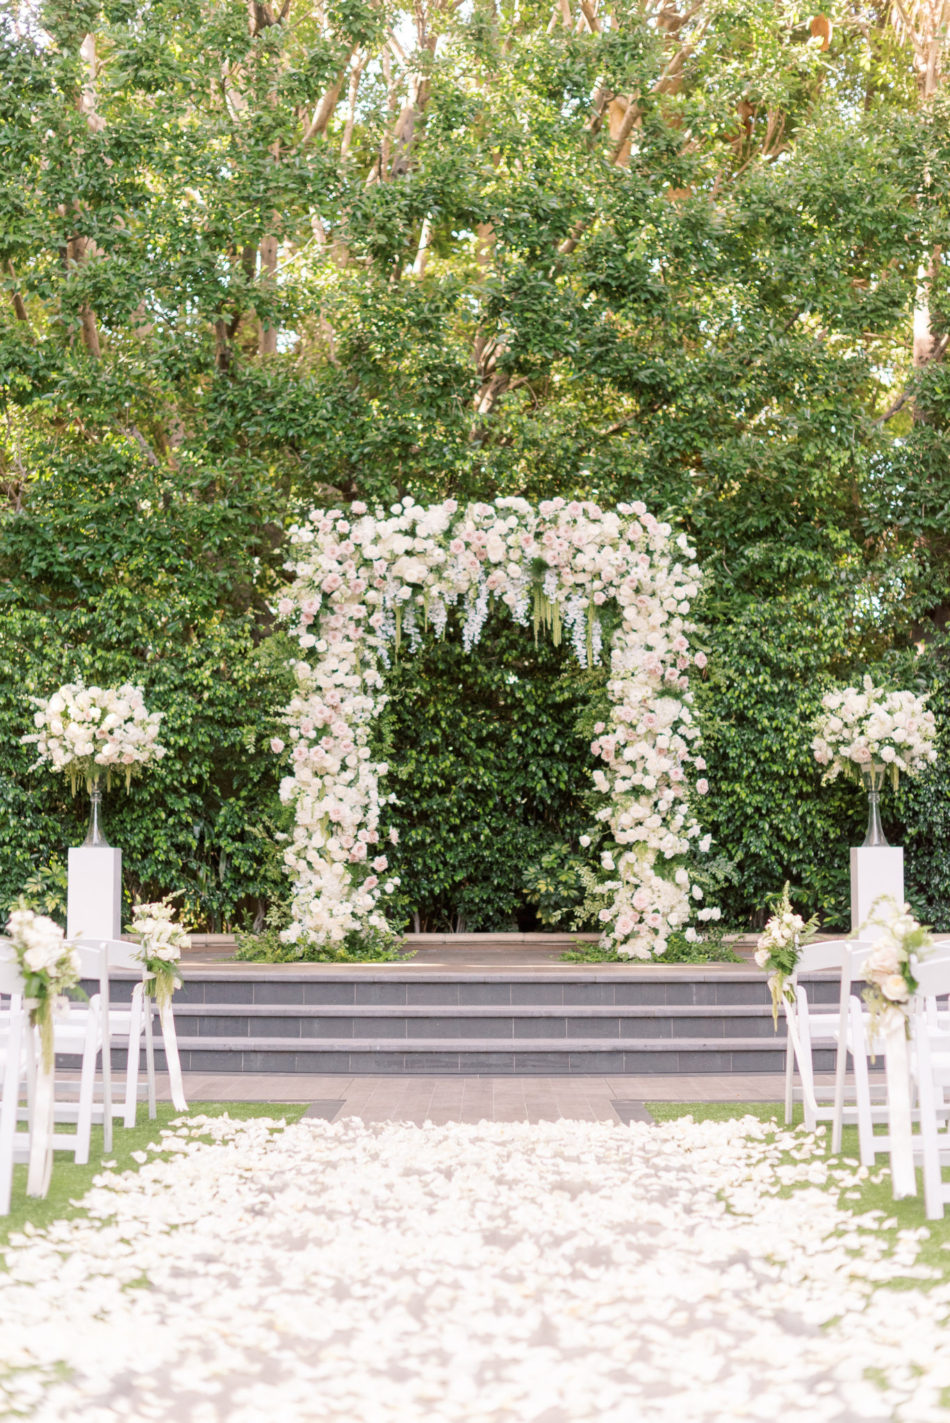 beverly hills wedding, blush floral arch, four seasons wedding, floral design, florist, wedding florist, wedding flowers, orange county weddings, orange county wedding florist, orange county florist, orange county floral design, flowers by cina